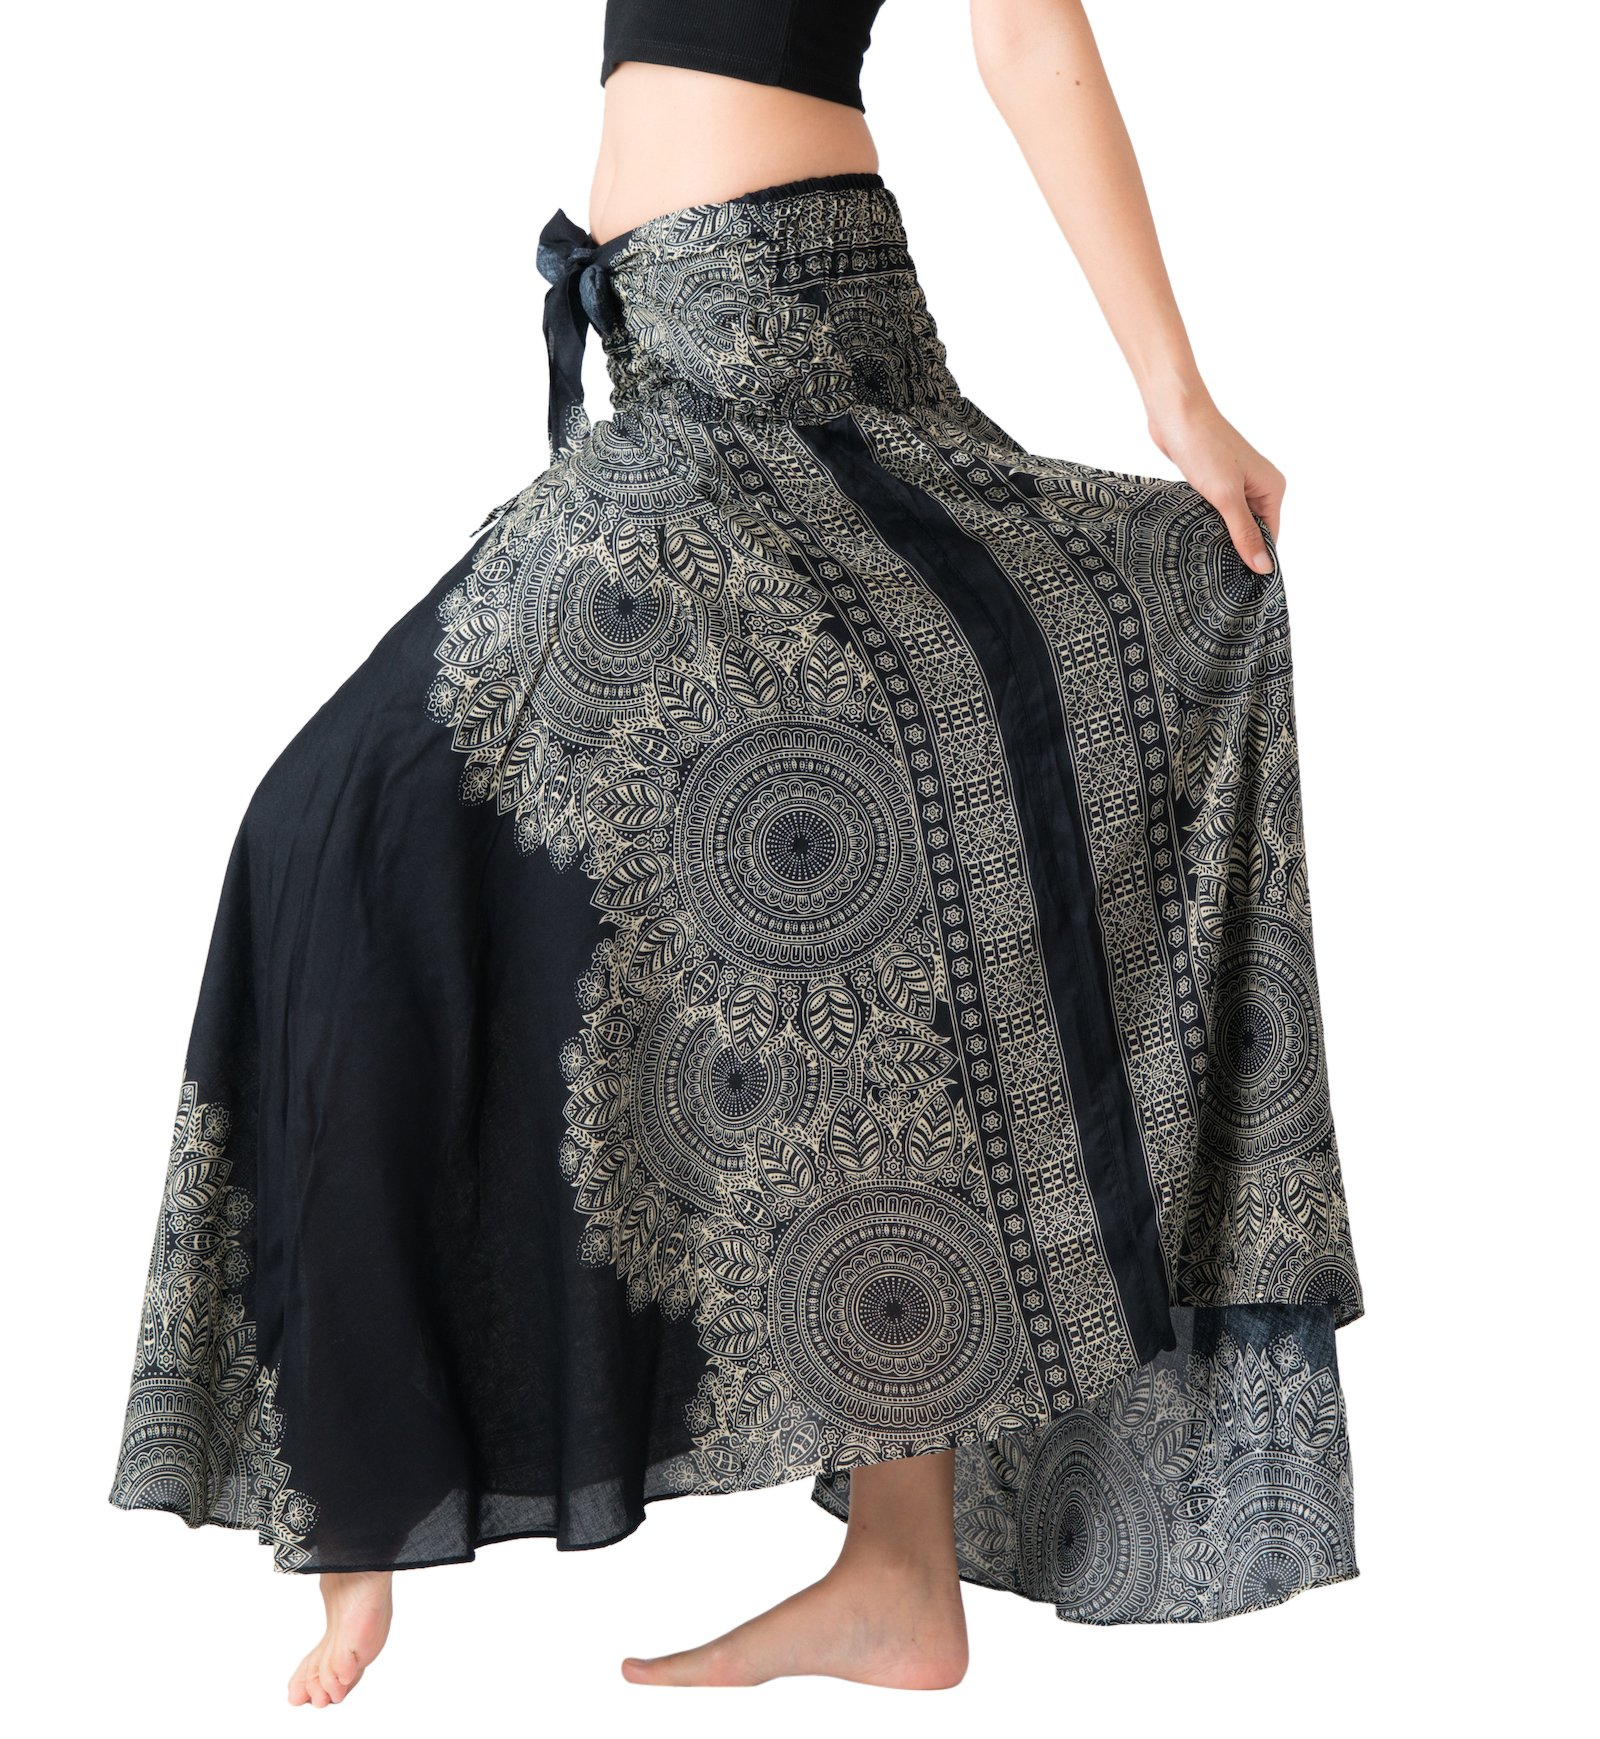 Bangkokpants Women's Long Hippie Bohemian Skirt Gypsy Dress Boho Clothes Flowers One Size Fits (Hippierose Black, One Size)